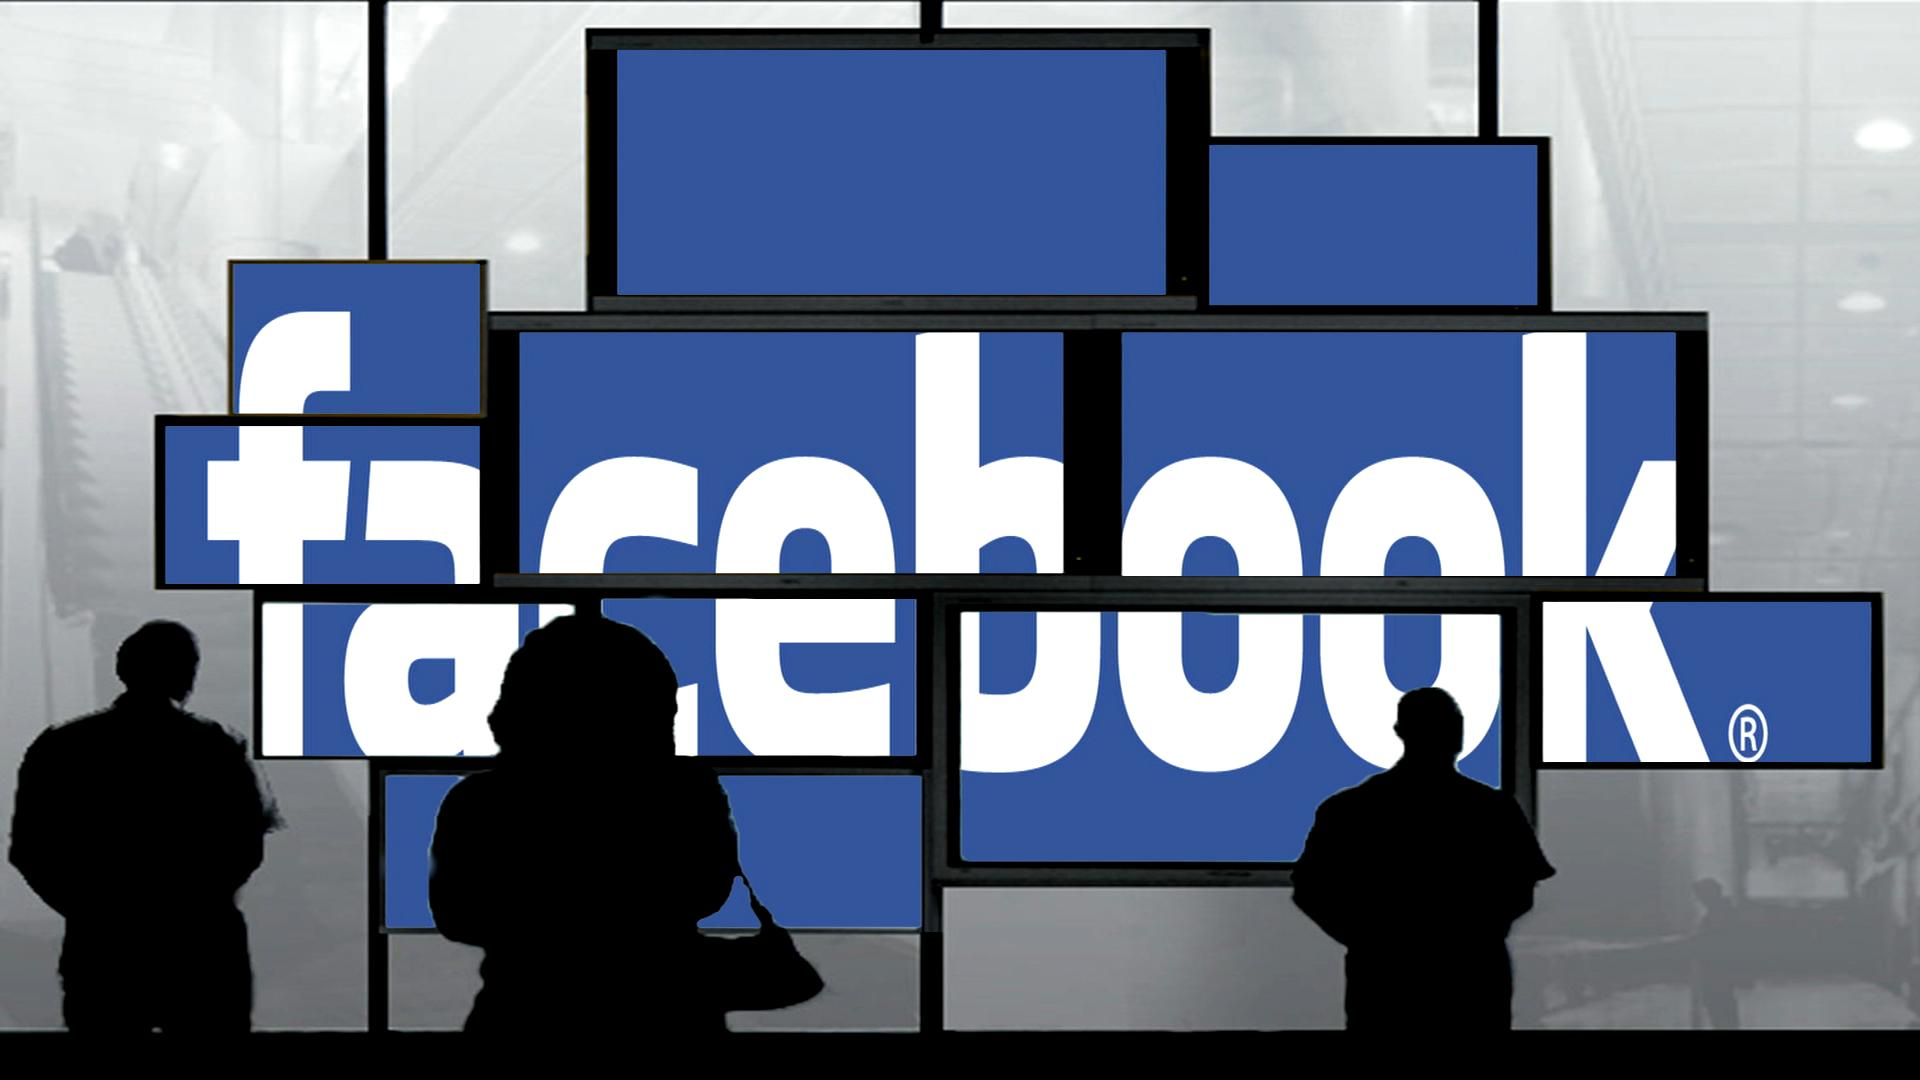 Kiwi Company Sues Facebook For Removing Profile